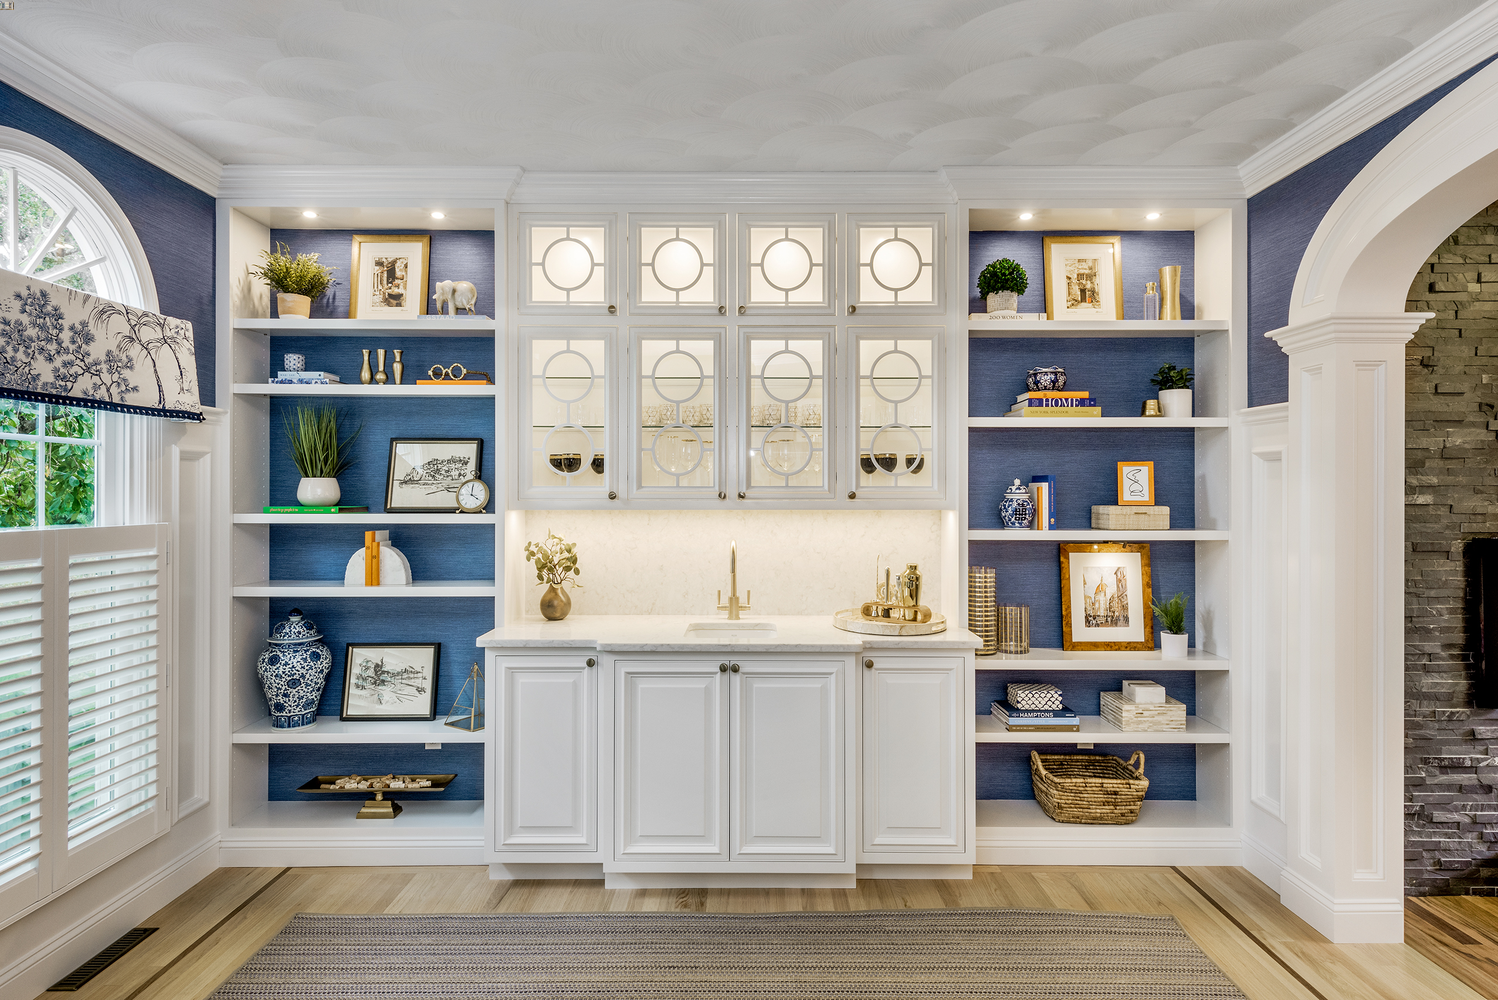 builtin bar mullion glass cabinets wallpaper blue shelves